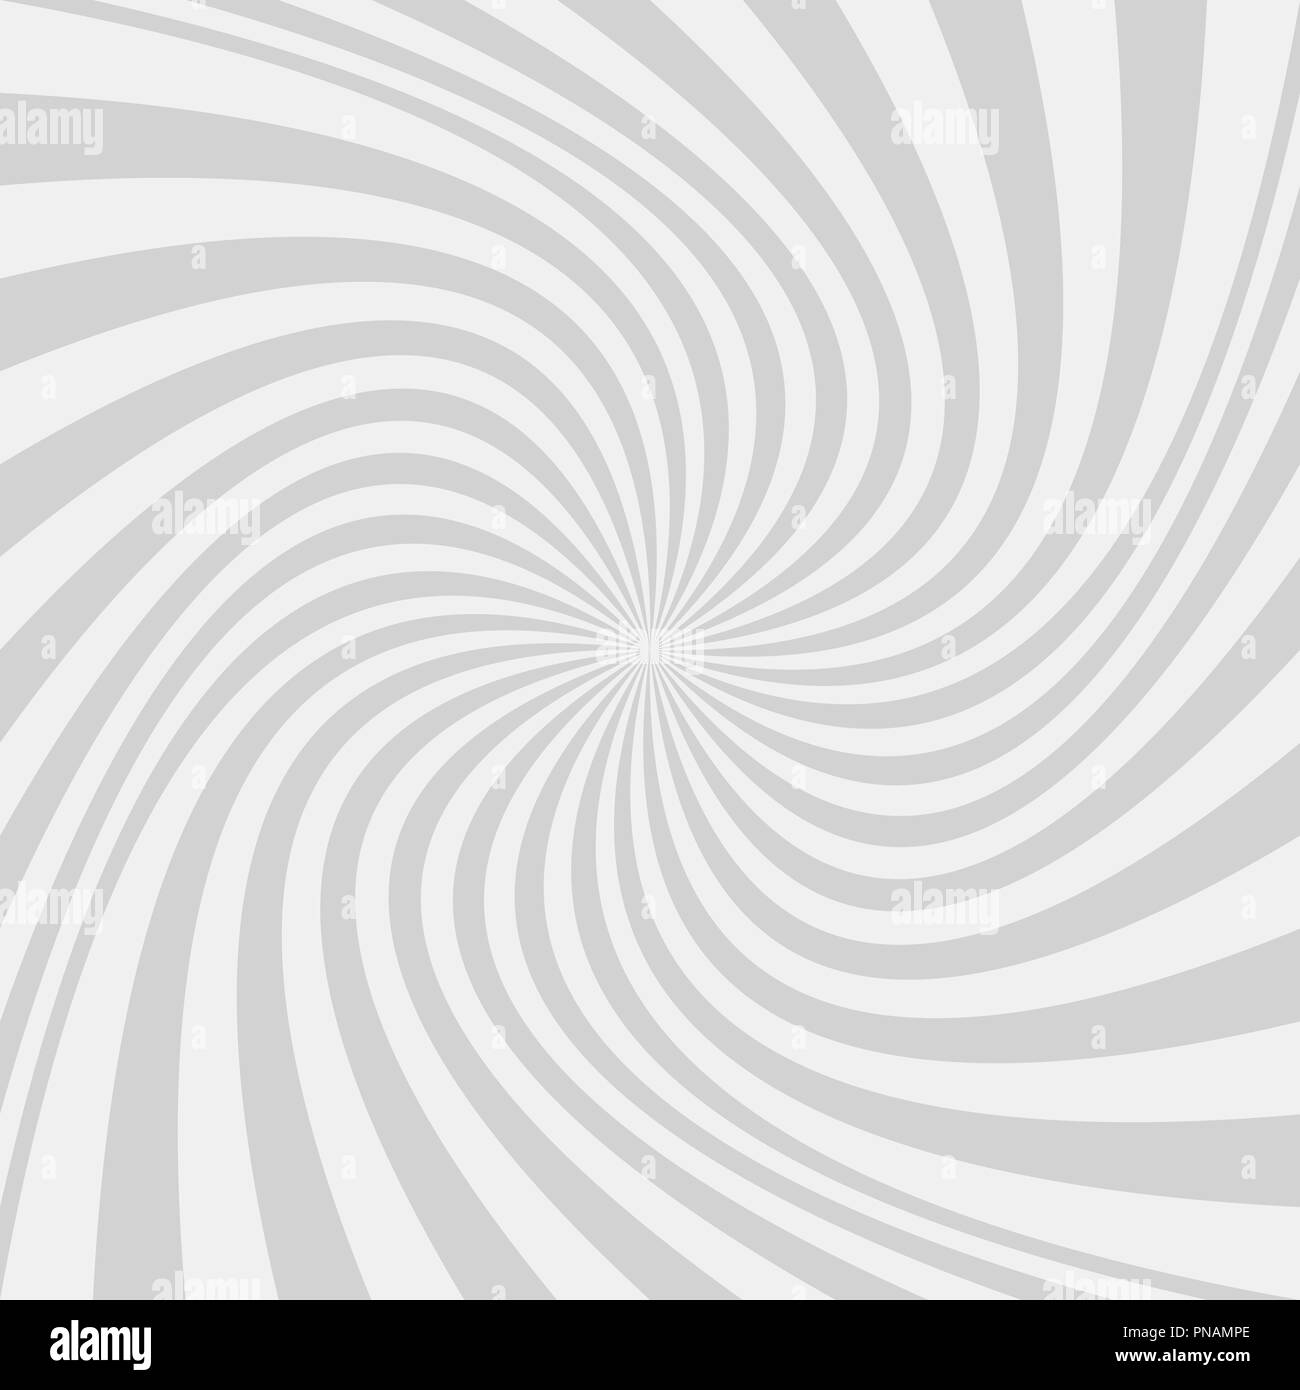 Light grey abstract spiral design background - vector design from twisted rays - Stock Image